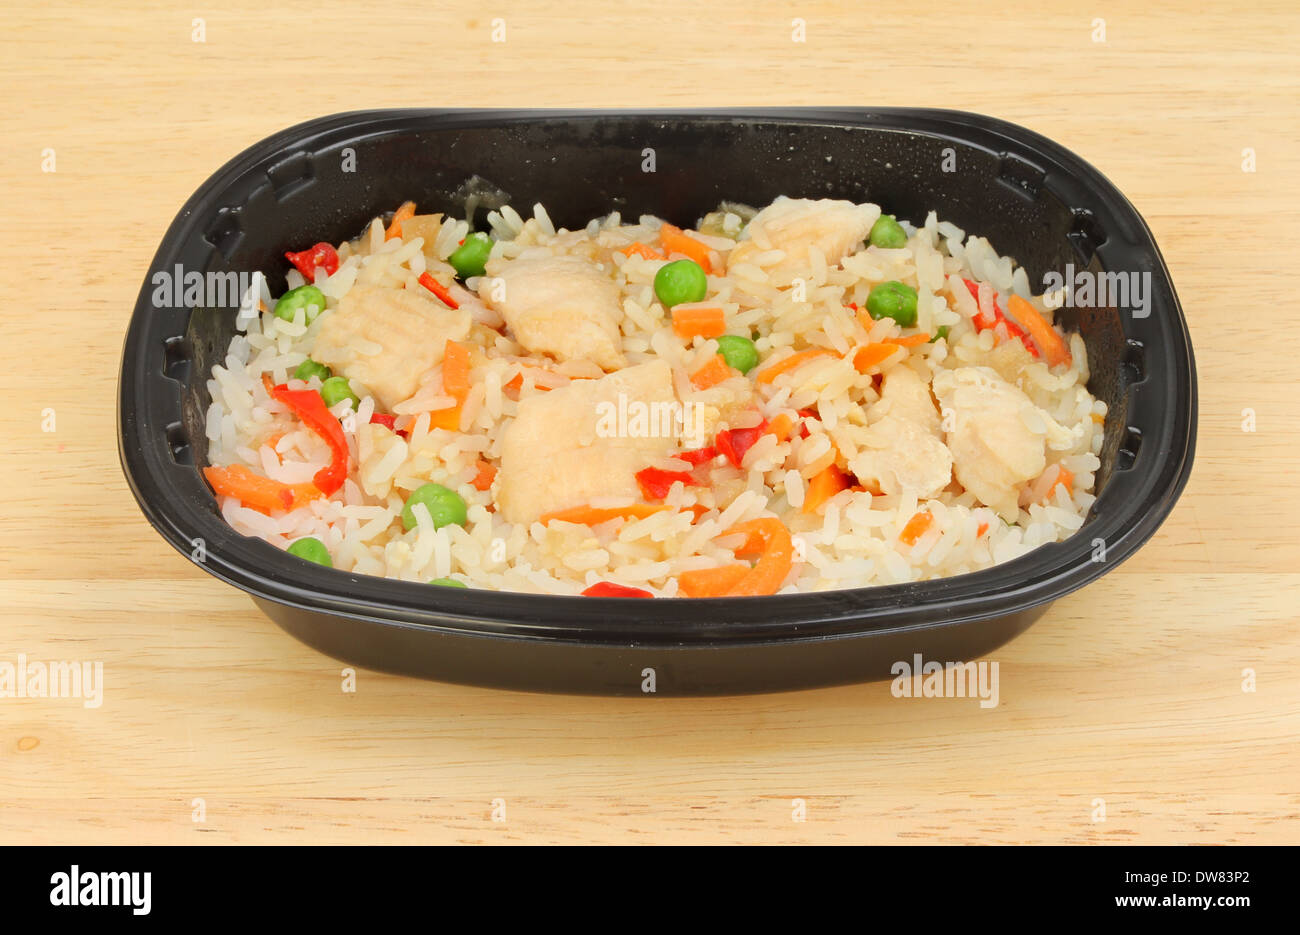 Chinese convenience meal in a plastic tray on a wooden worktop - Stock Image